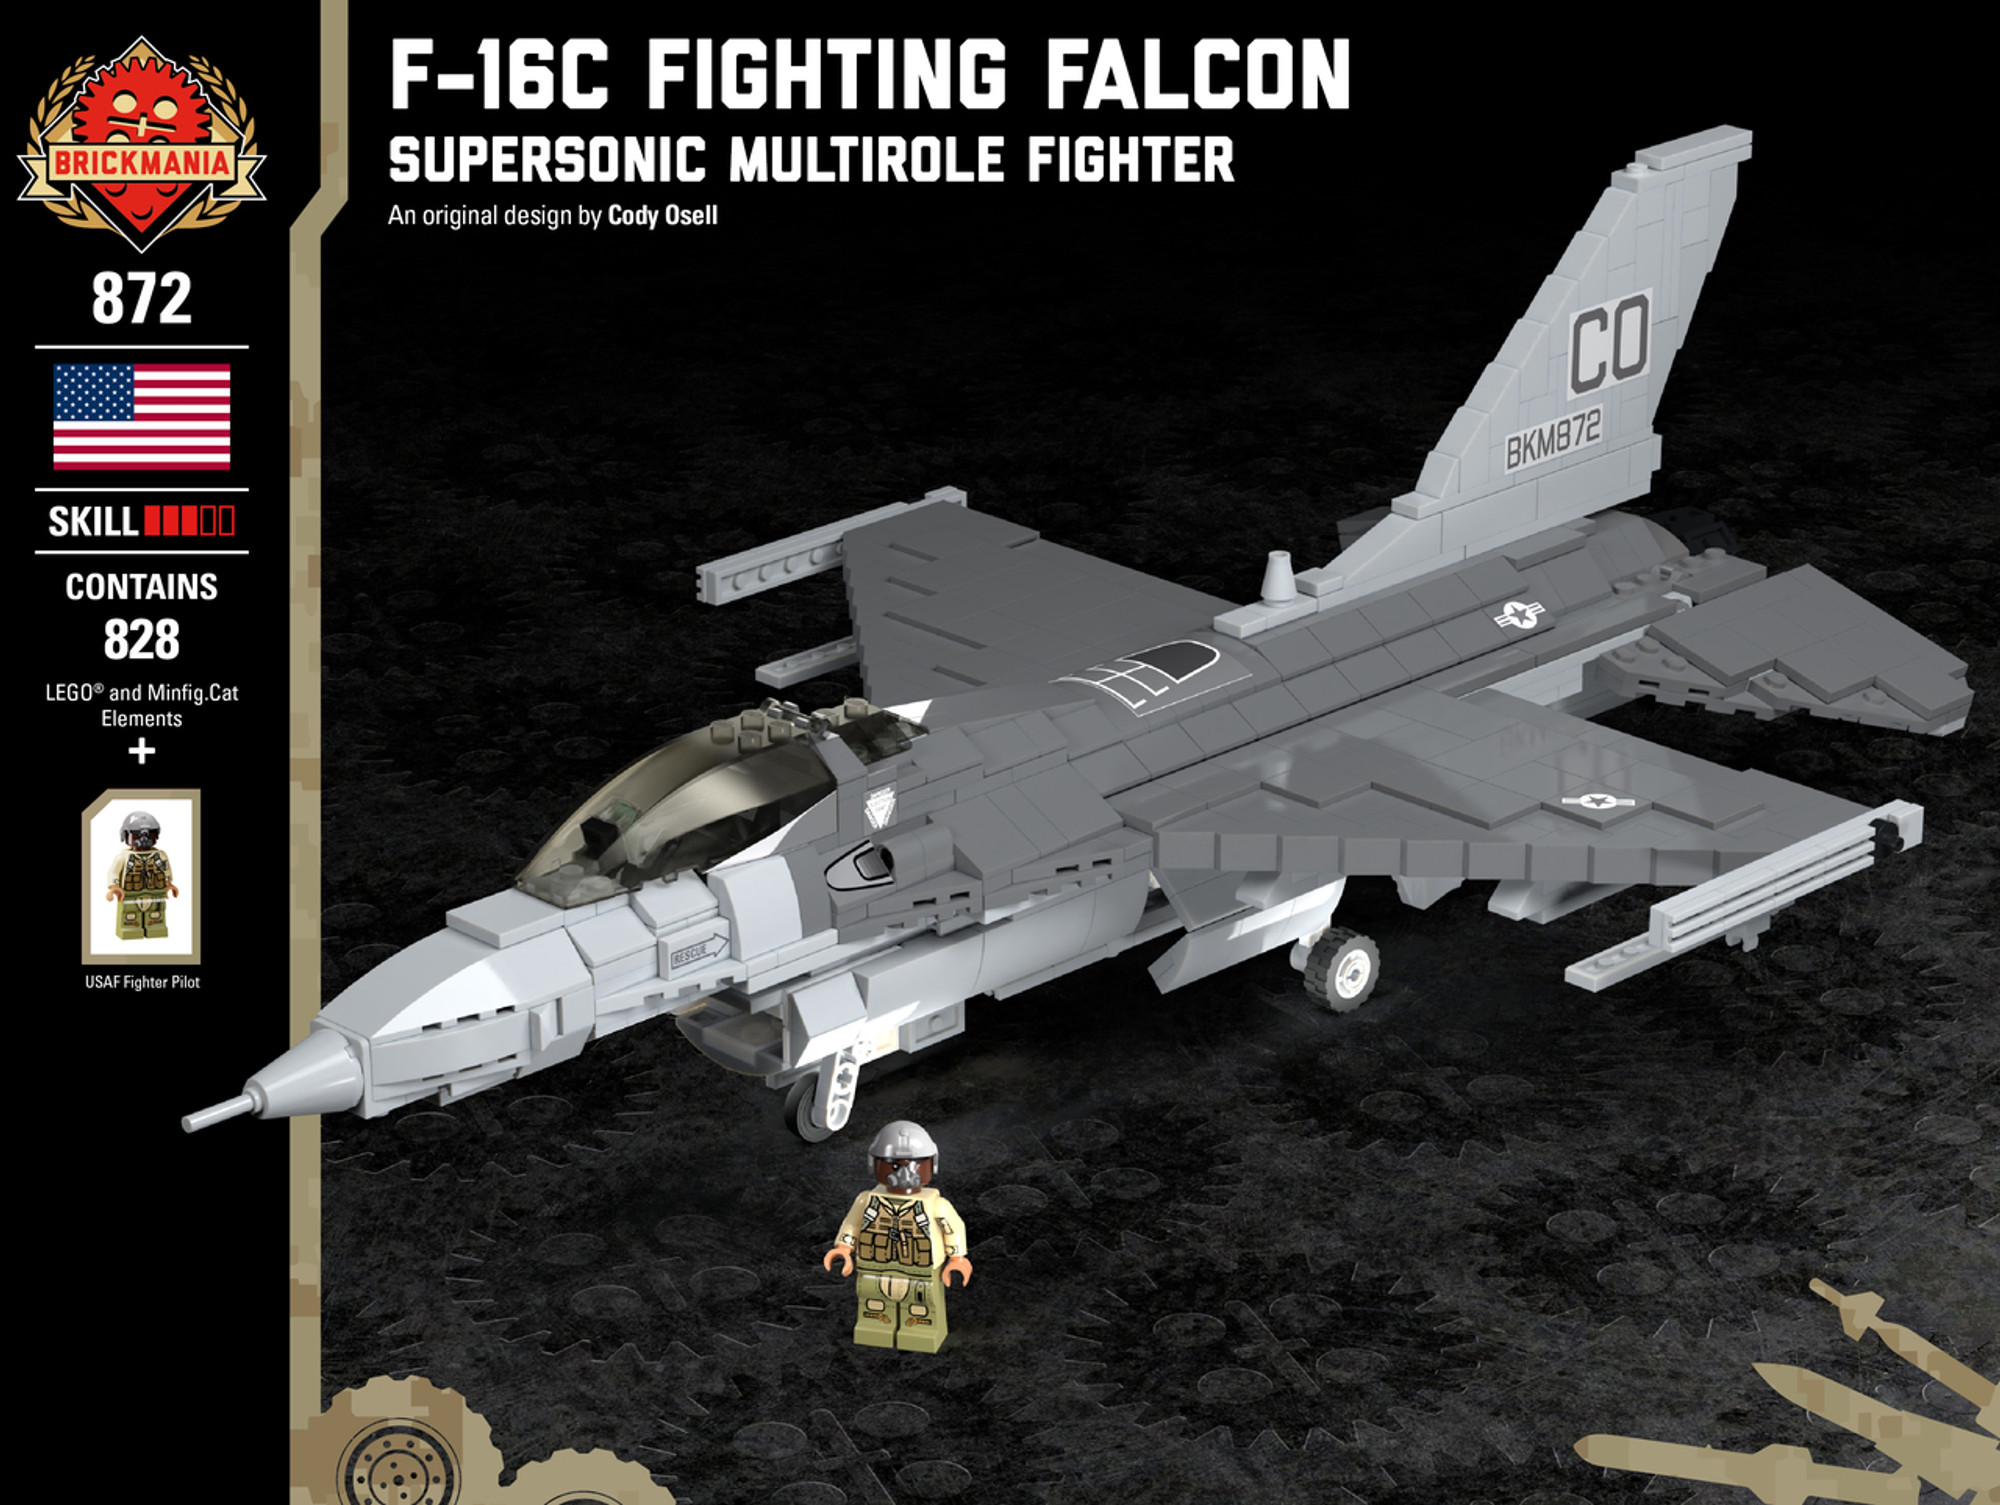 F 16c Fighting Falcon Supersonic Multirole Fighter Brickmania Toys Let's apply these steps to the hex number (4fa)16. f 16c fighting falcon supersonic multirole fighter